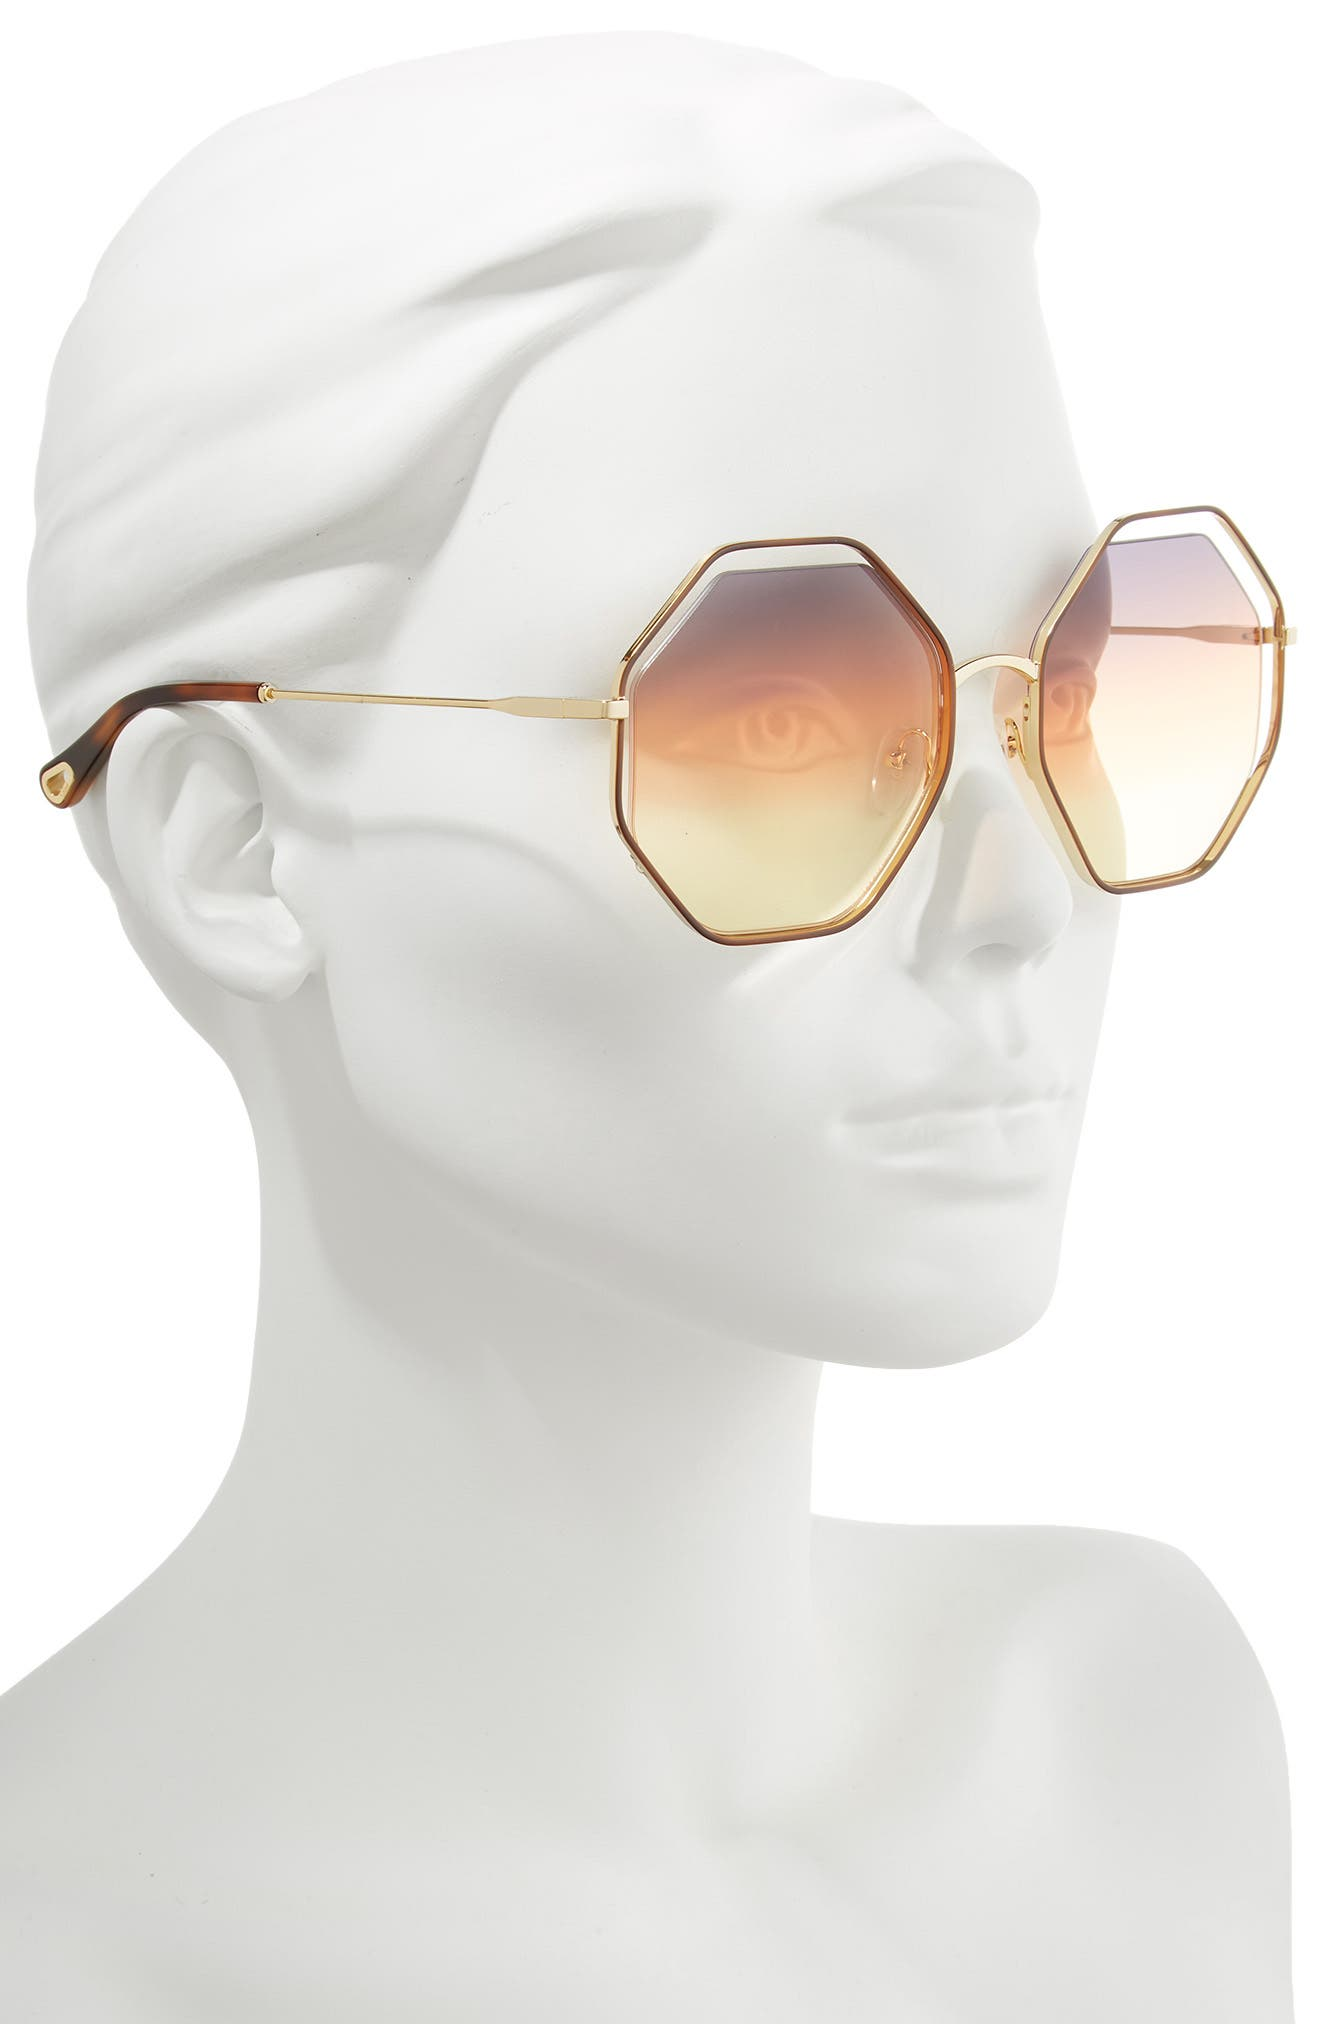 58mm Octagonal Halo Lens Sunglasses,                             Alternate thumbnail 2, color,                             HAVANA/ GREY ORANGE YELLOW